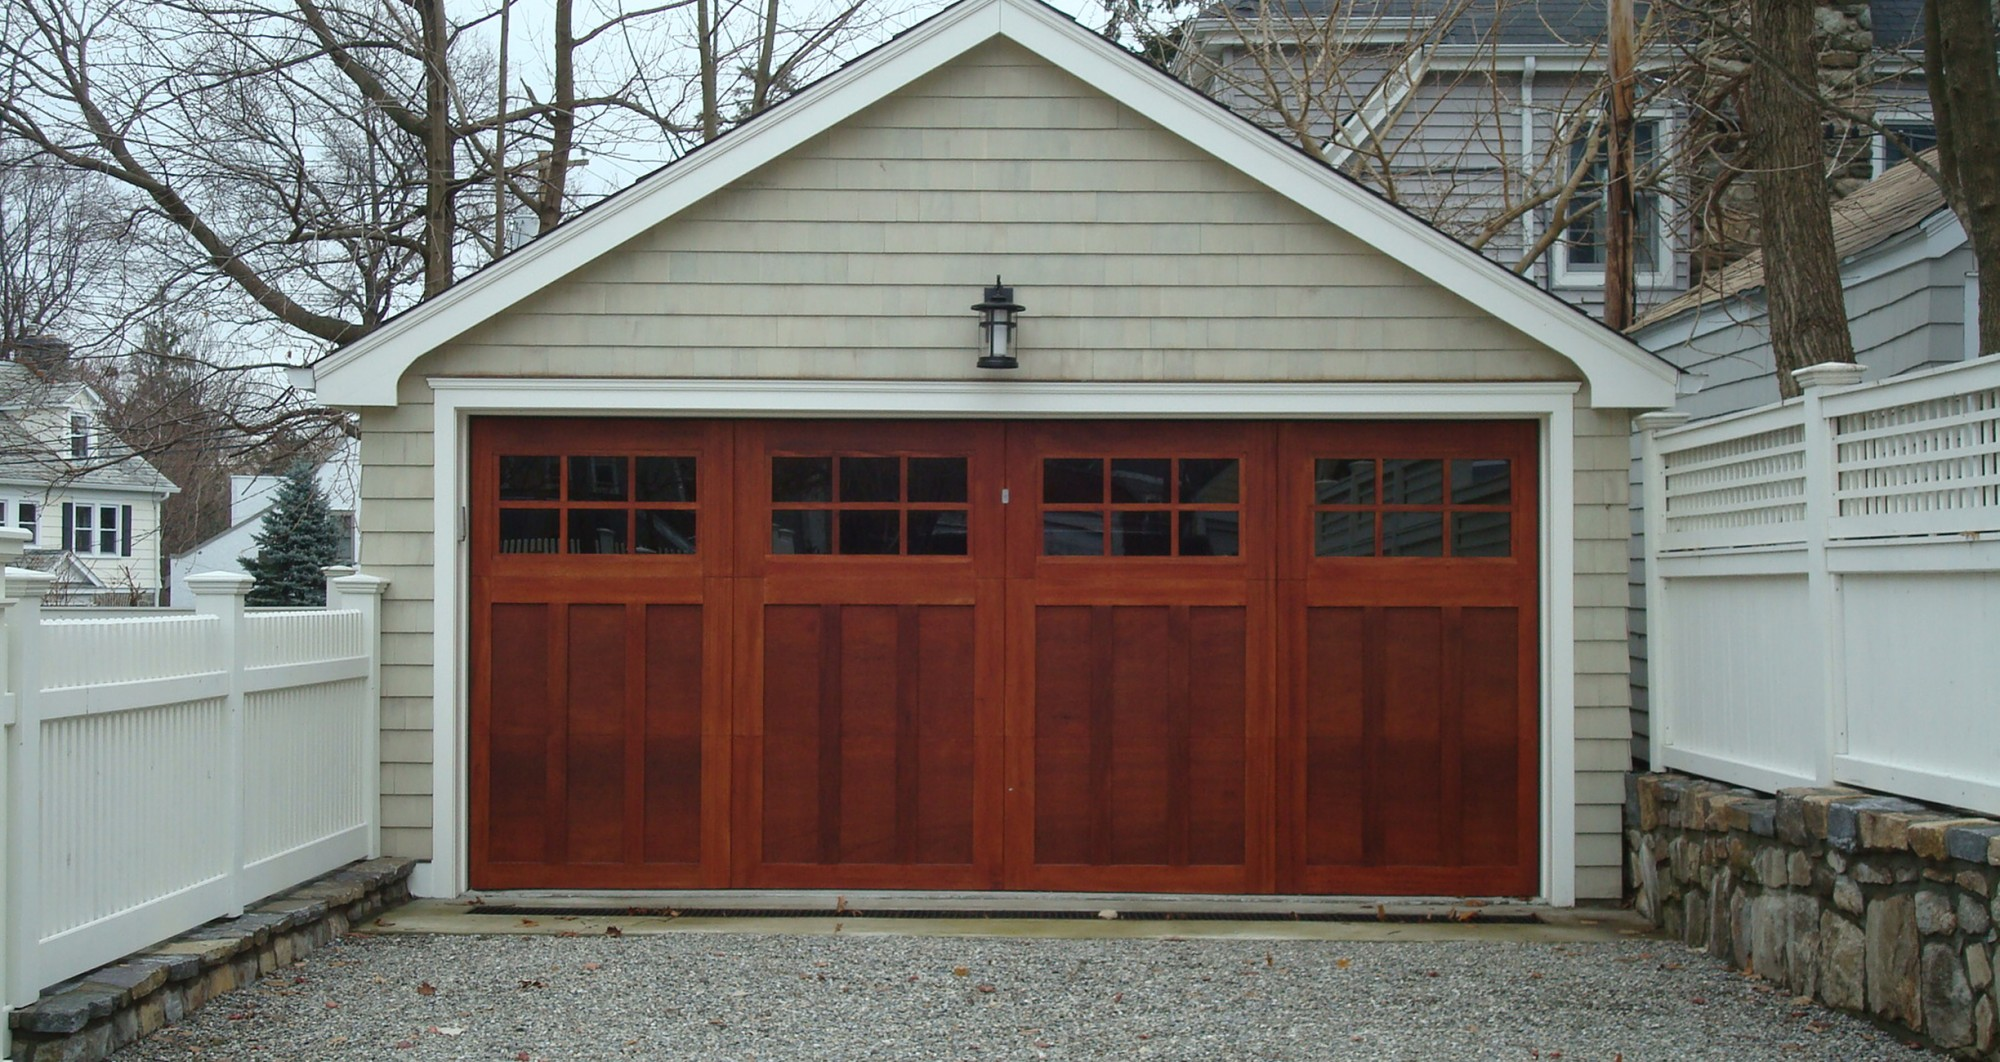 Builder Collection & Residential u0026 Commercial Garage Doors - Northwest Door pezcame.com